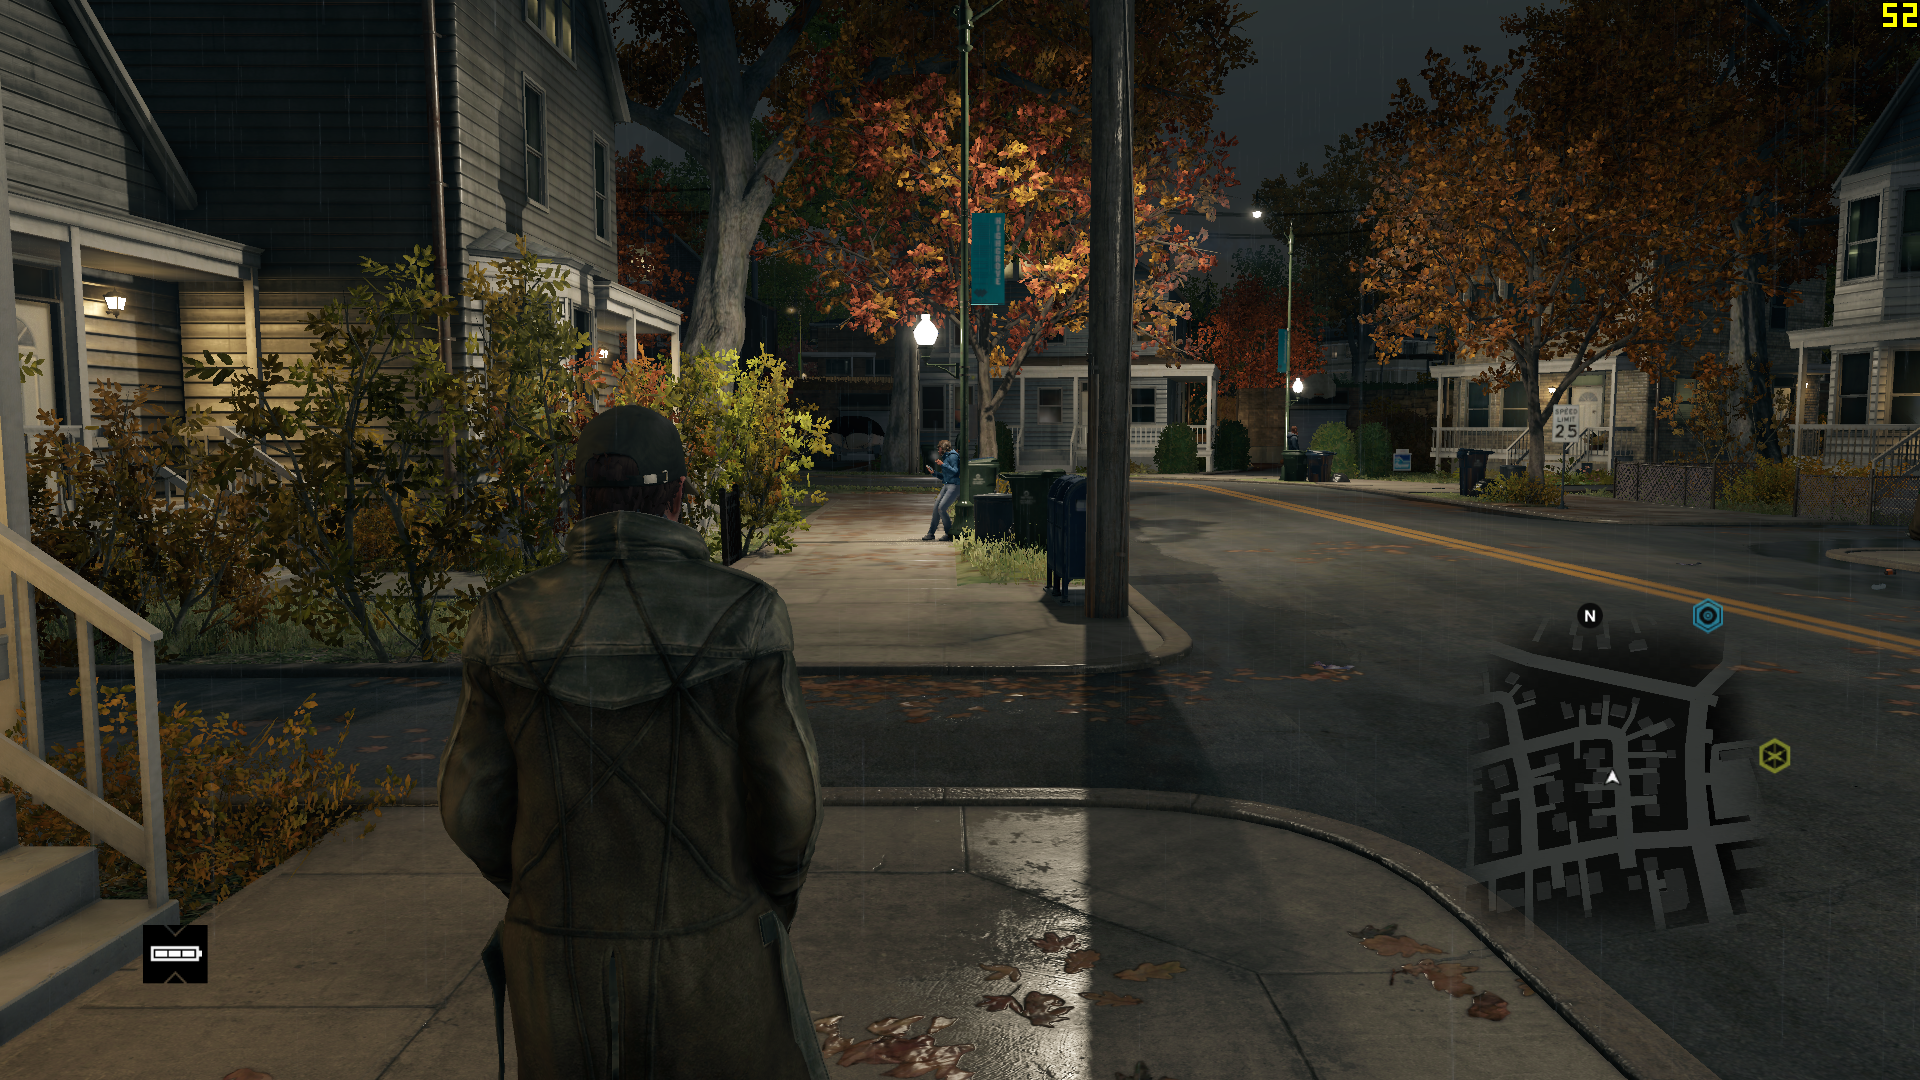 watch_dogs--010p0uno.png